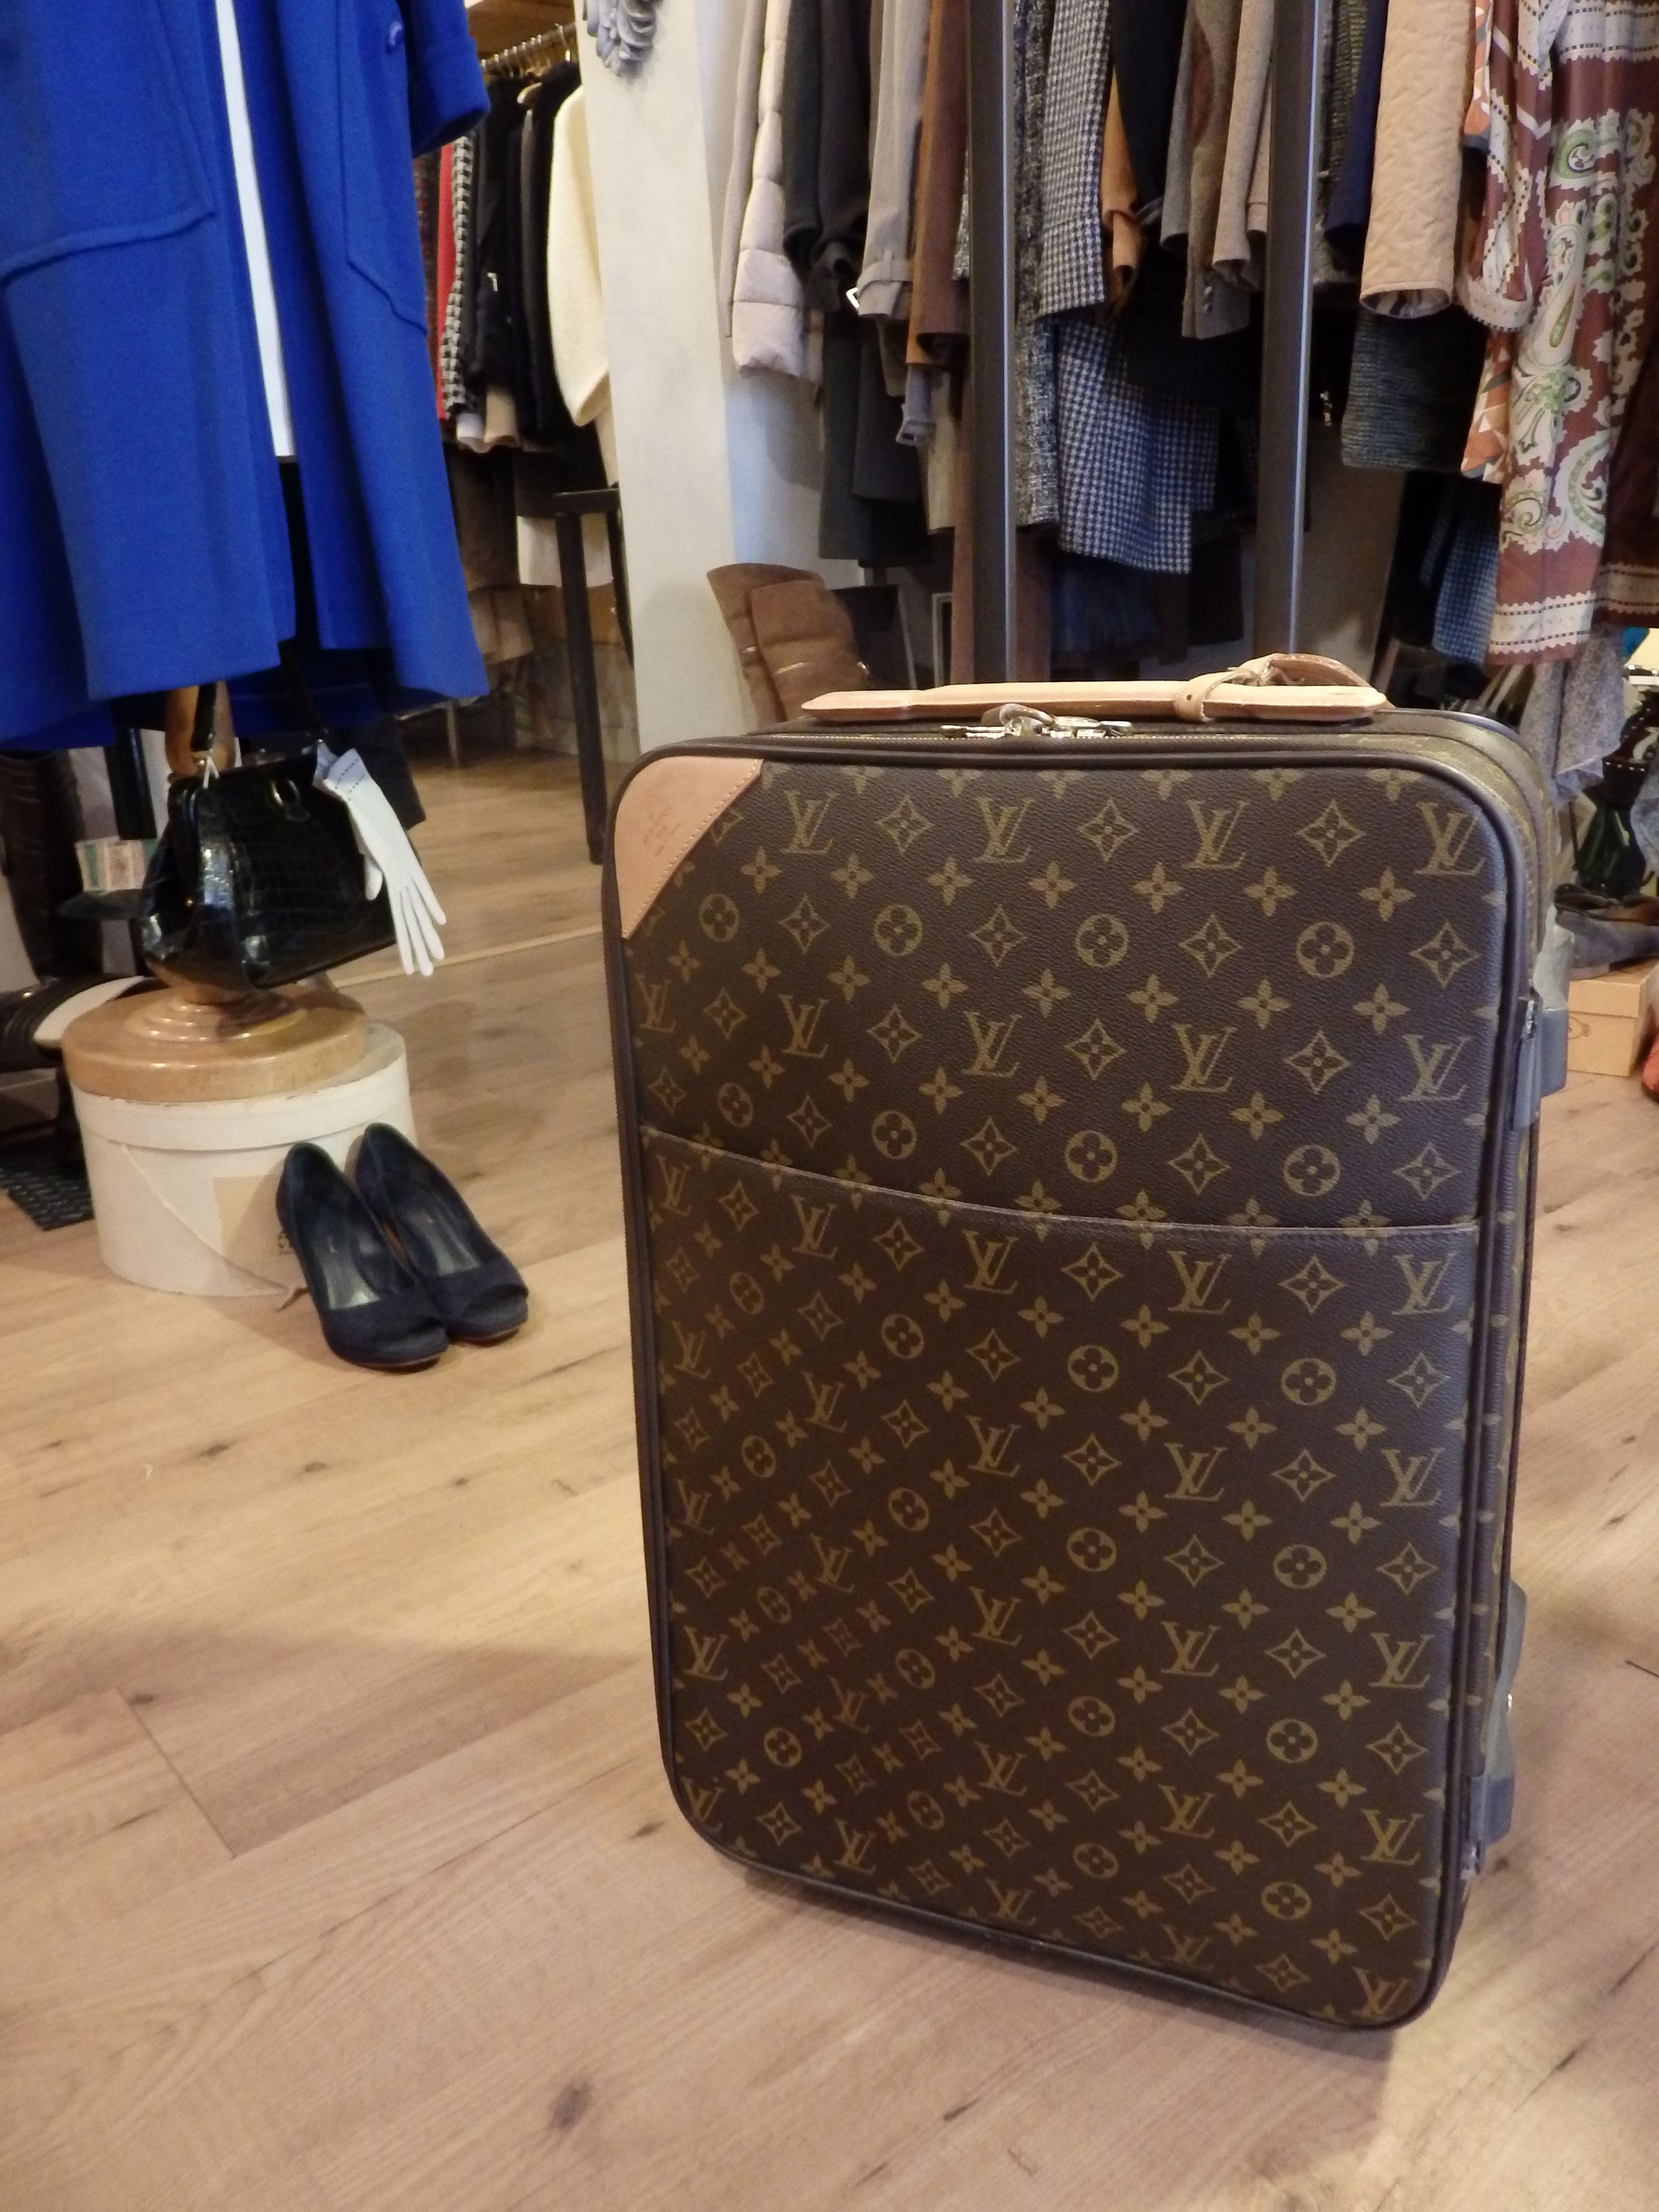 e93853853 Maletas Louis Vuitton Originales | Stanford Center for Opportunity ...